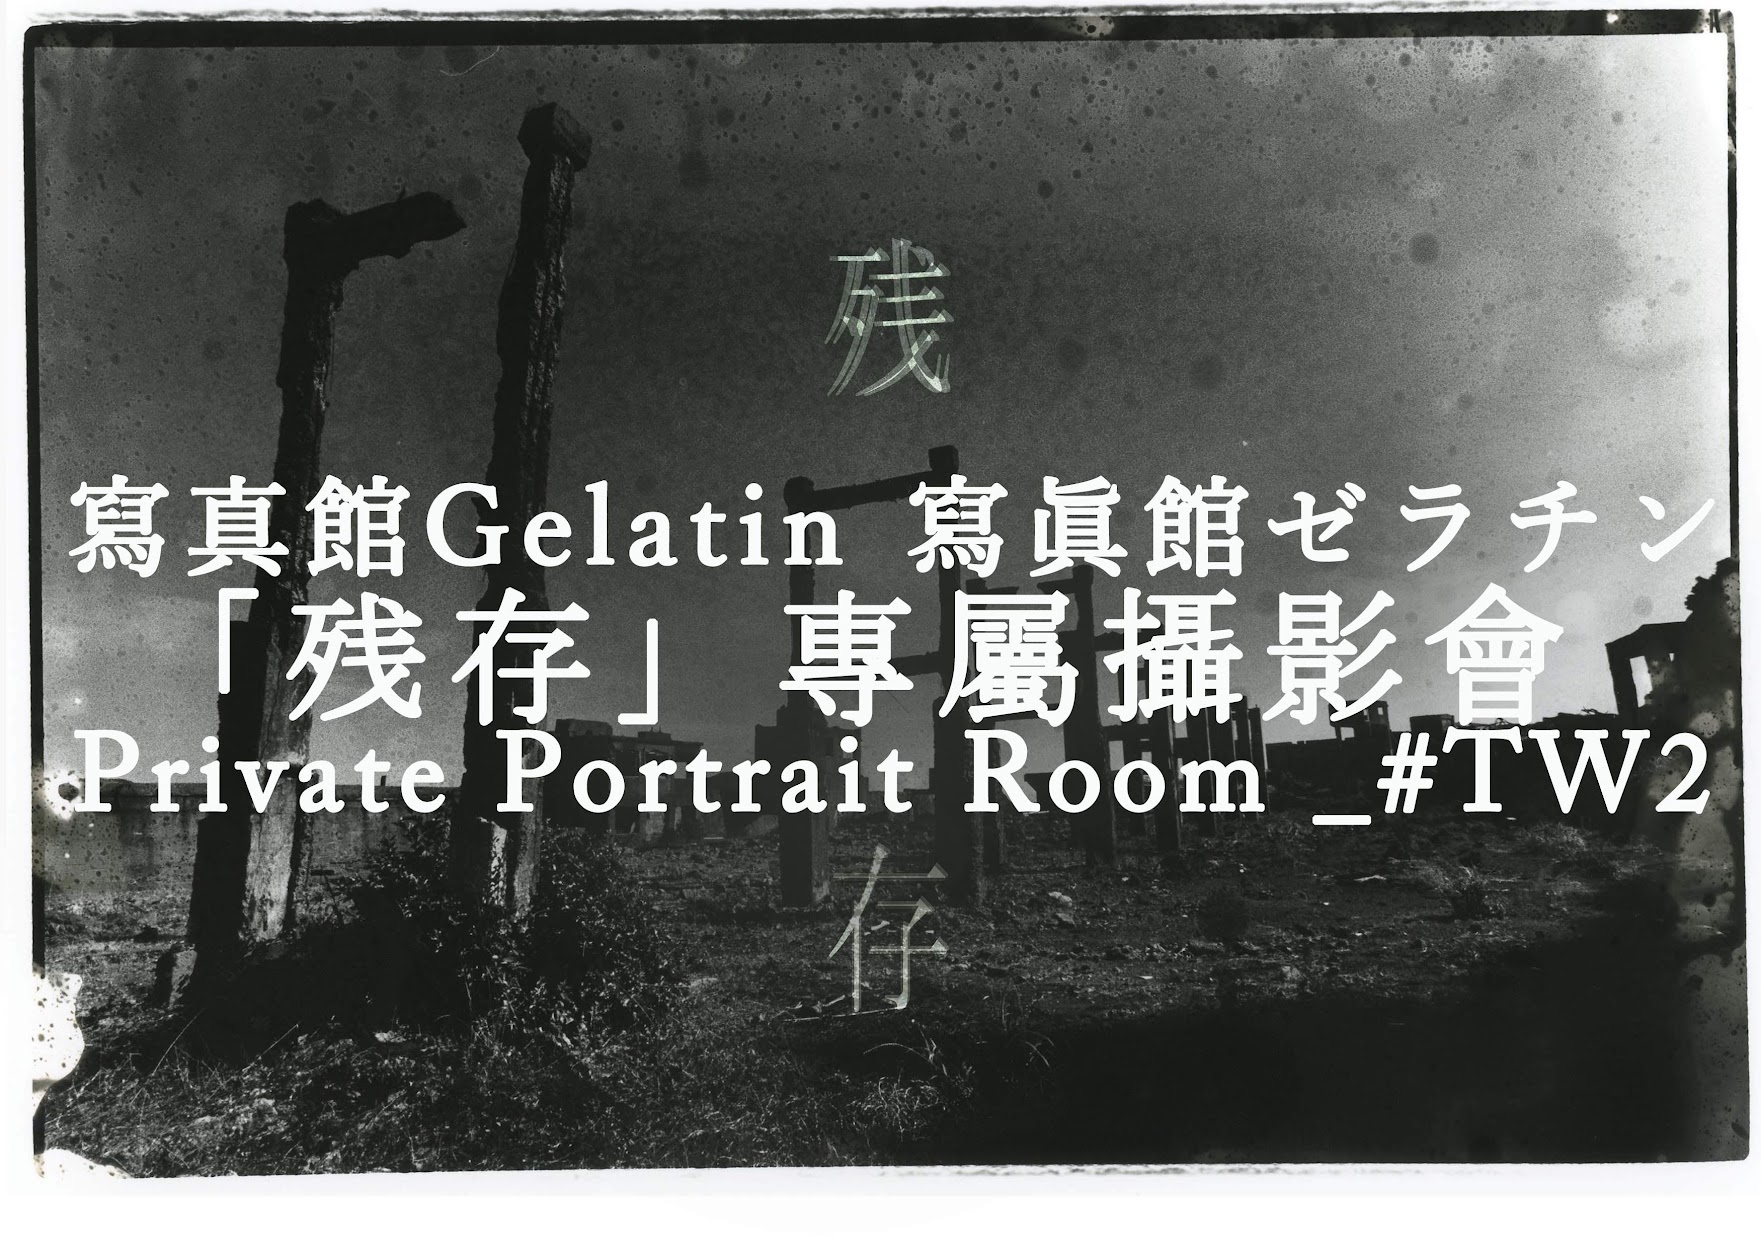 寫真館Gelatin残存專屬攝影會「Private Portrait Room _#TW2 」